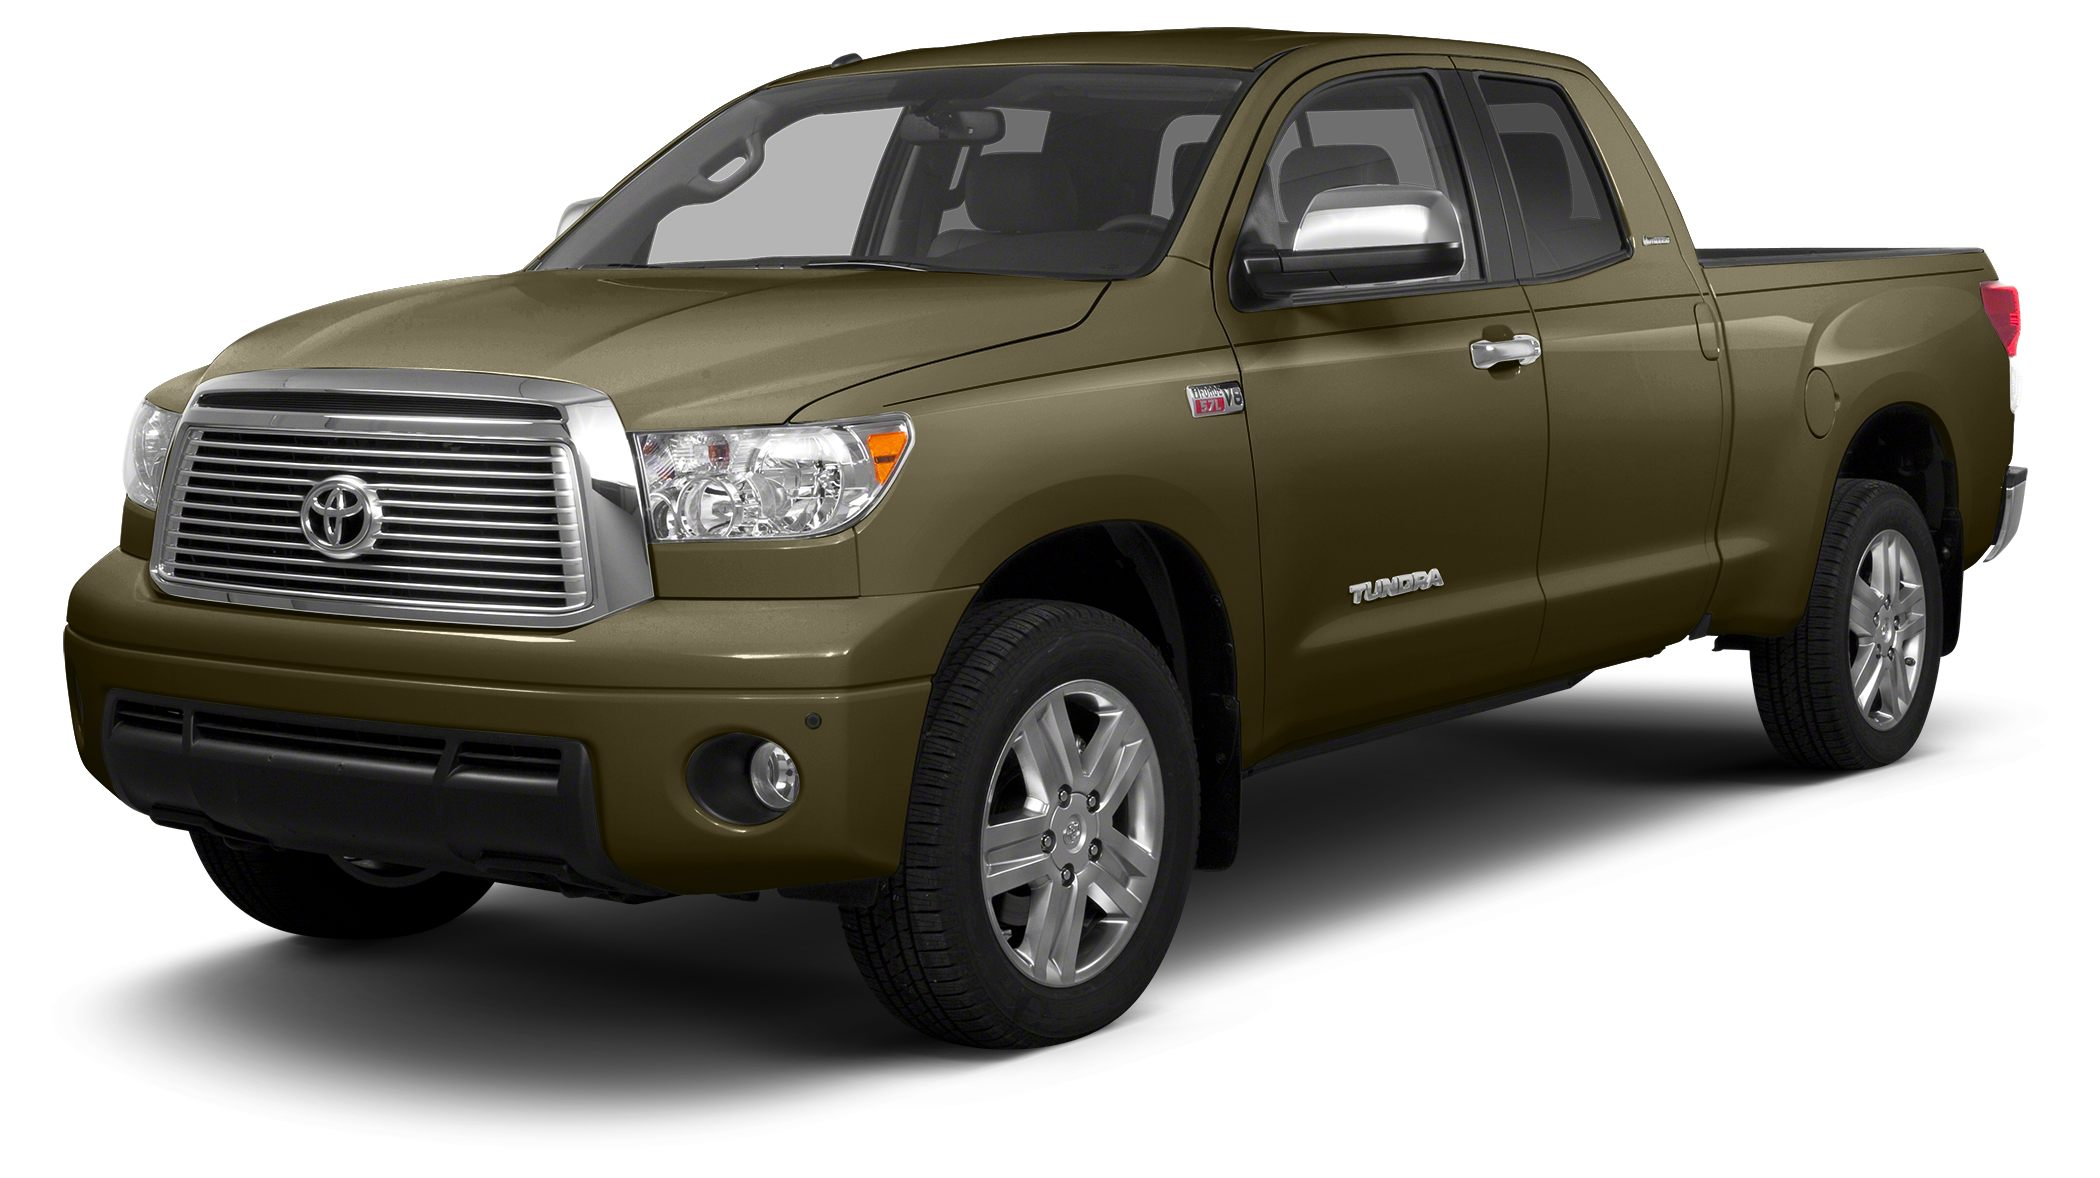 2013 Toyota Tundra Grade Nation wide most reliable pickup A very versatile truck for all your nee